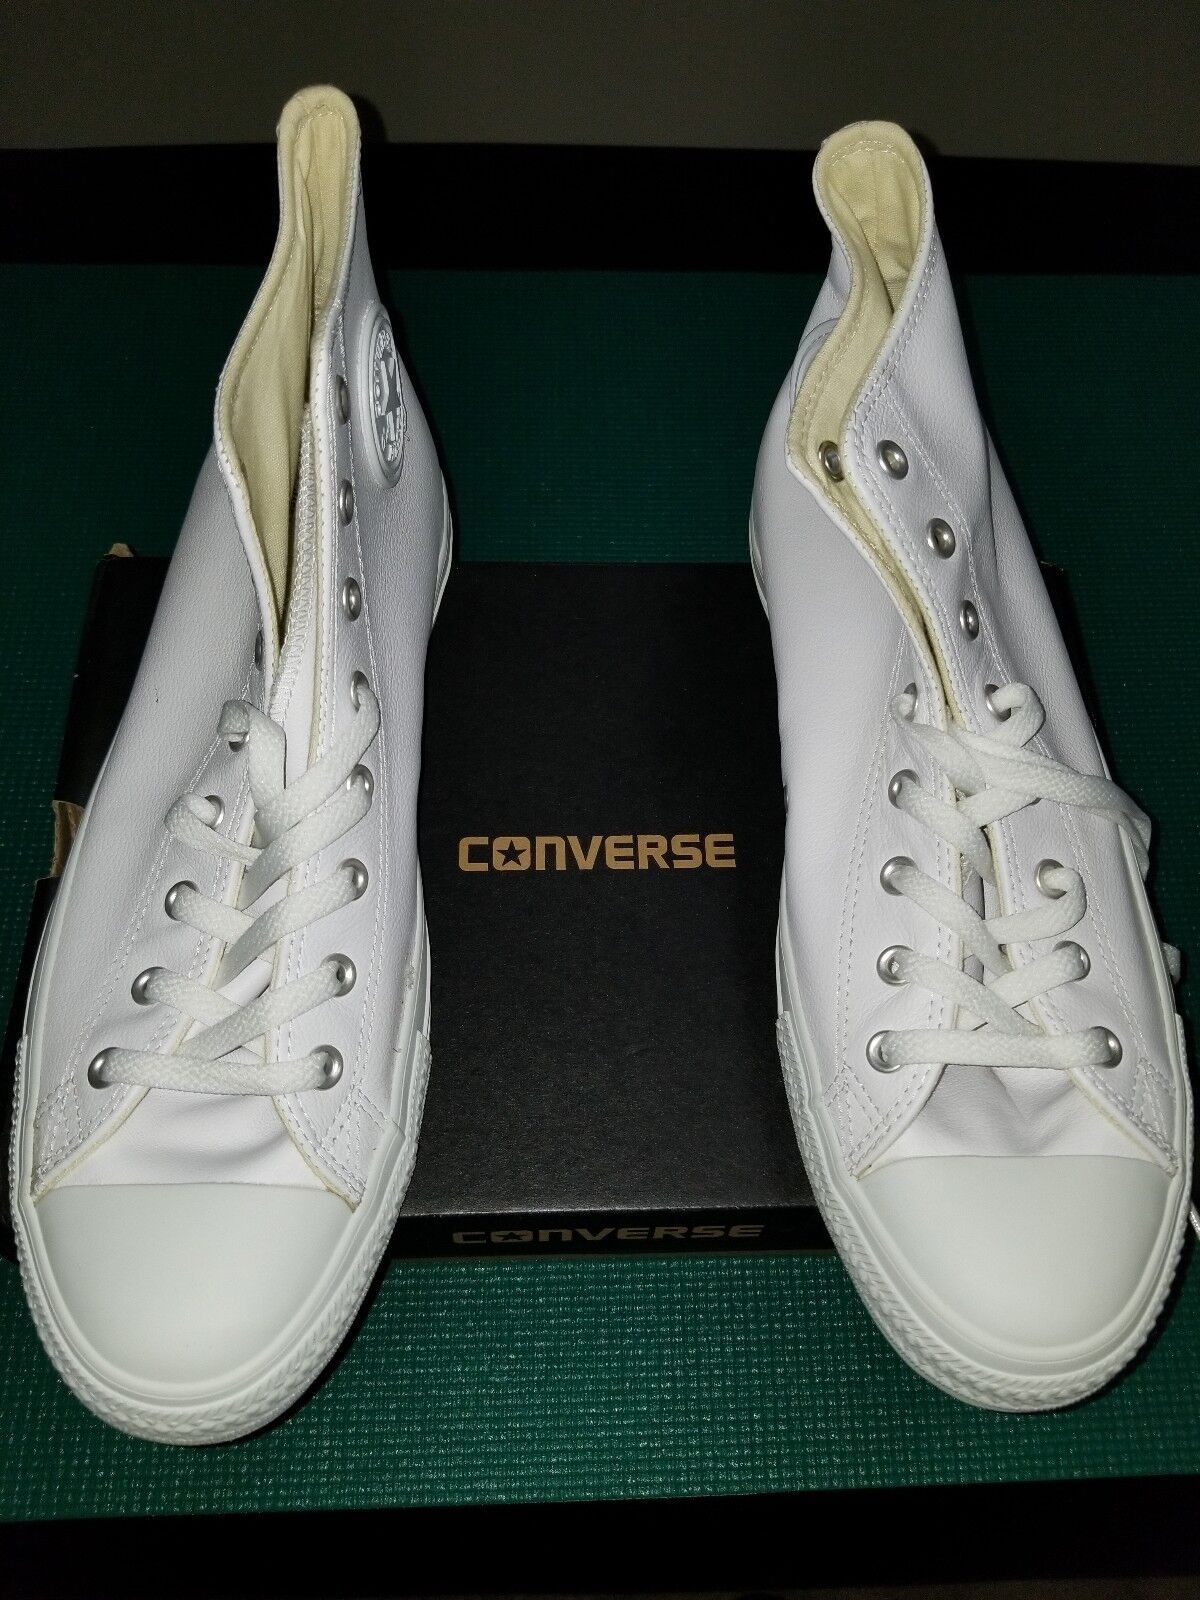 Converse Chuck Taylor All Star Leather High Top Sneaker Size 13